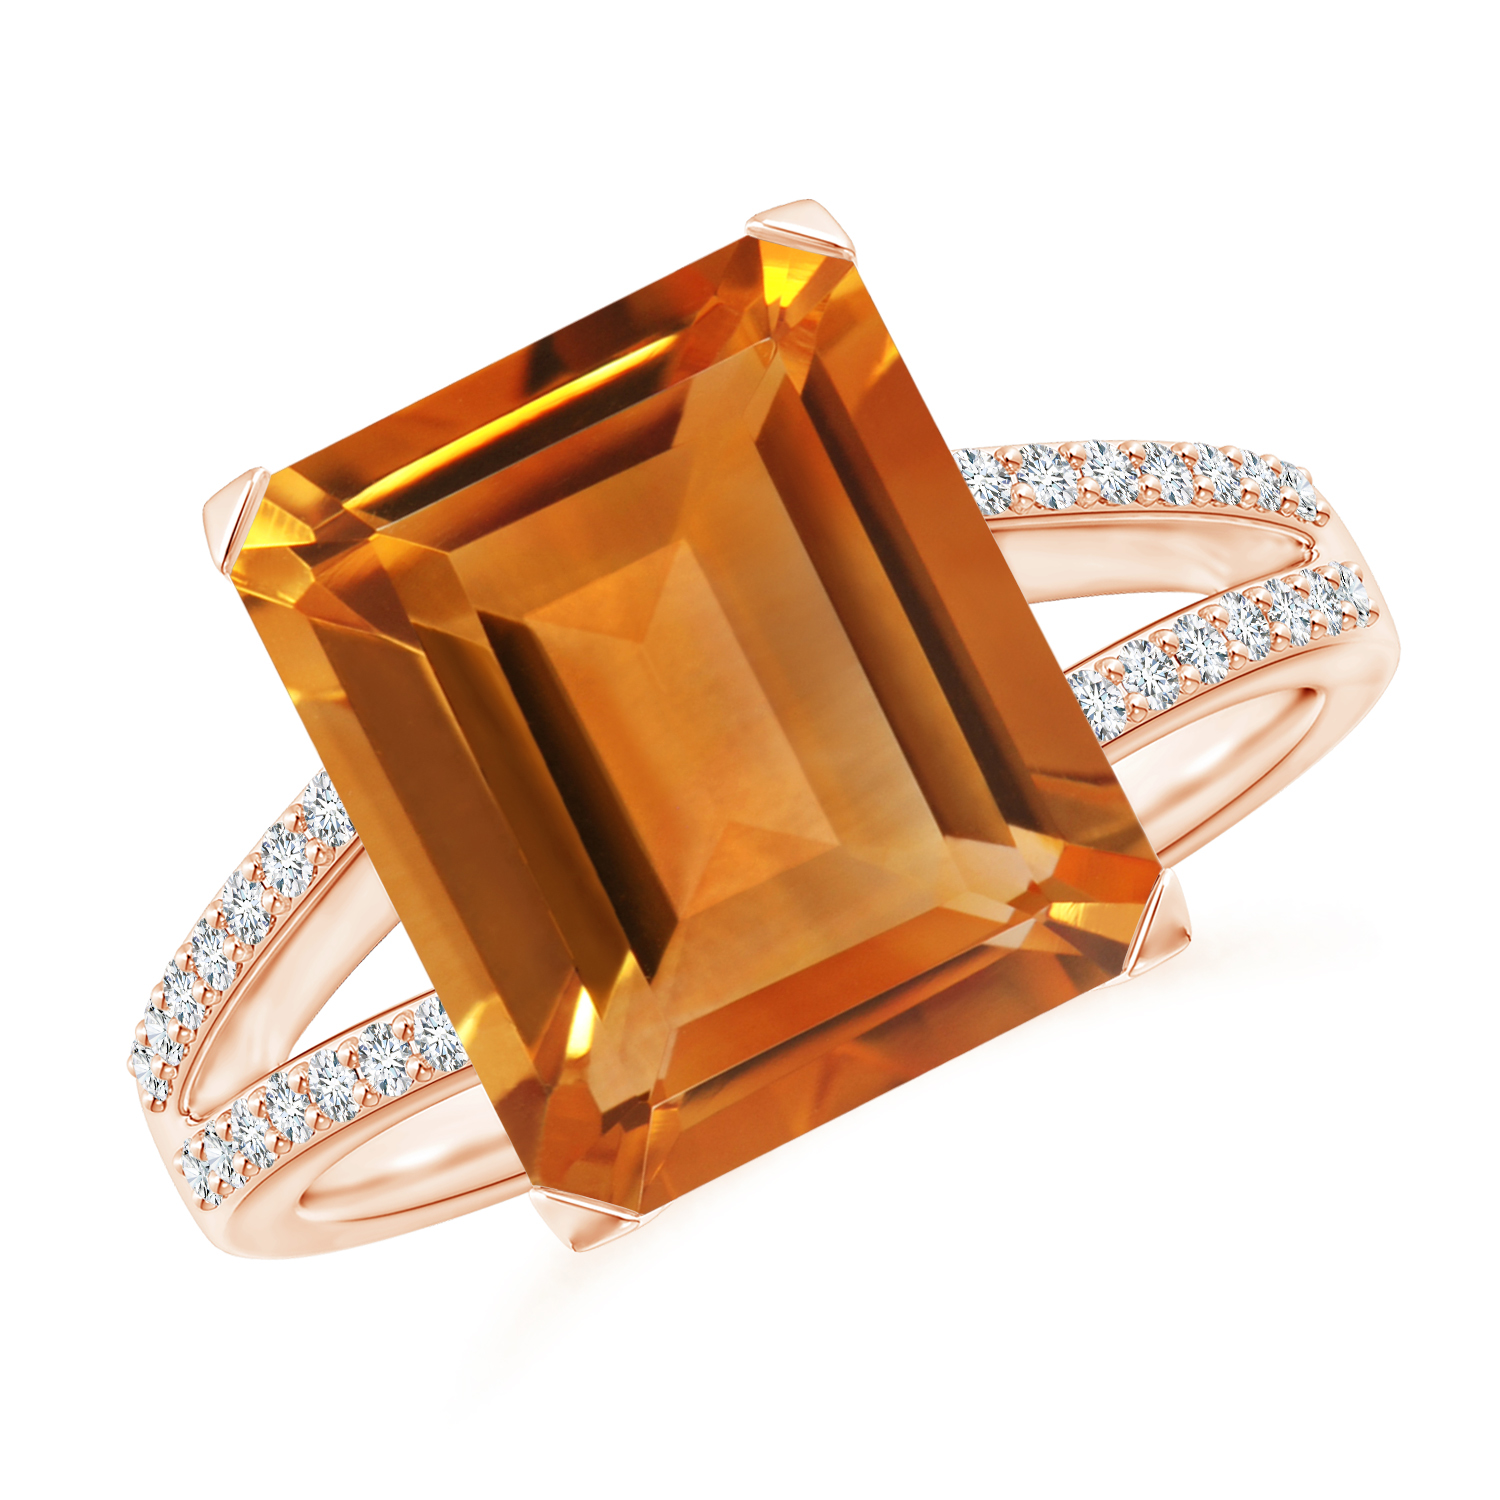 Emerald Cut Citrine Cocktail Ring with Diamond Accents - Angara.com